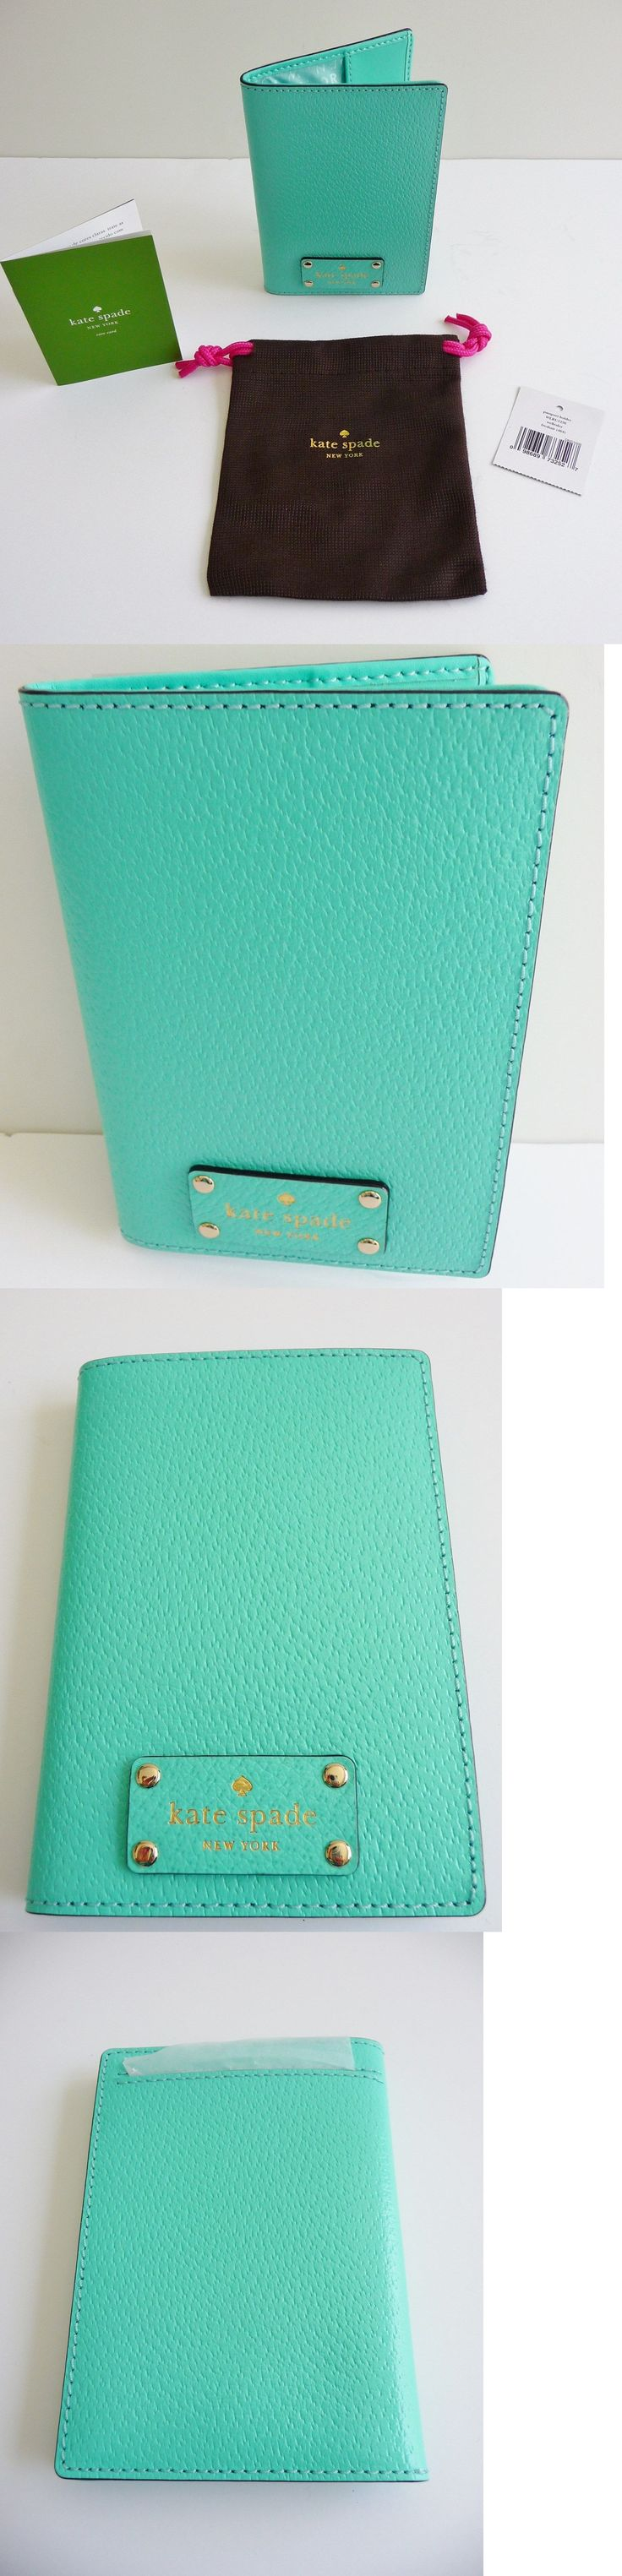 ID and Document Holders 169279: Kate Spade Newyork Nwt Wellesley Light Blue Leather Passport And Ticket Holder -> BUY IT NOW ONLY: $56 on eBay!